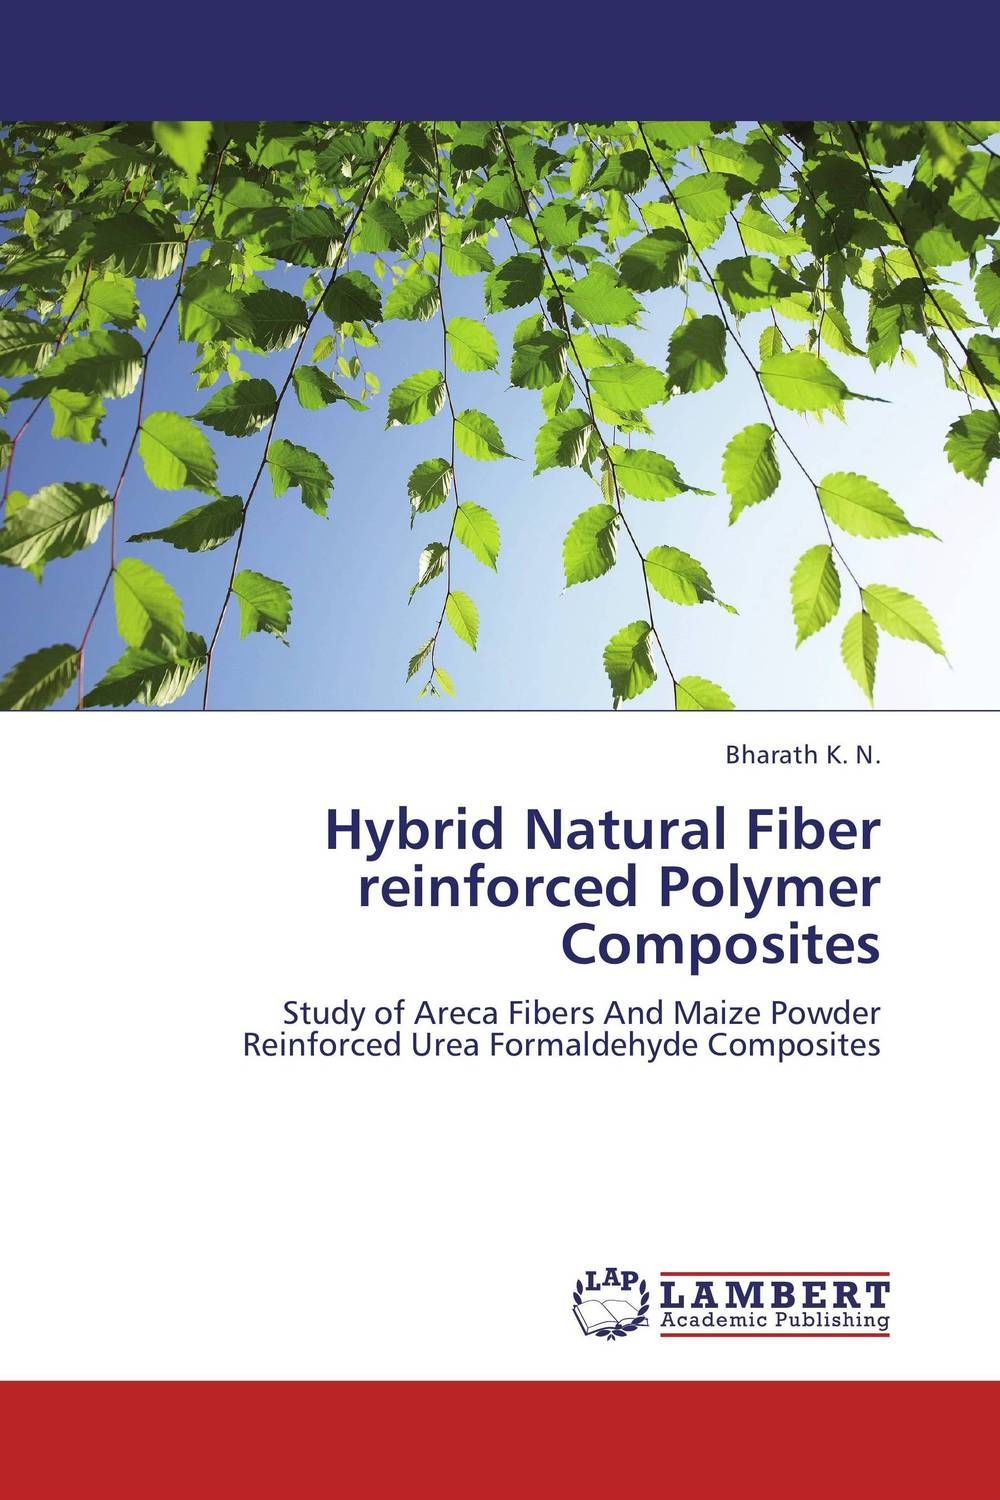 Hybrid Natural Fiber reinforced Polymer Composites raman bedi rakesh chandra and s p singh fatigue studies on glass fiber reinforced composite materials